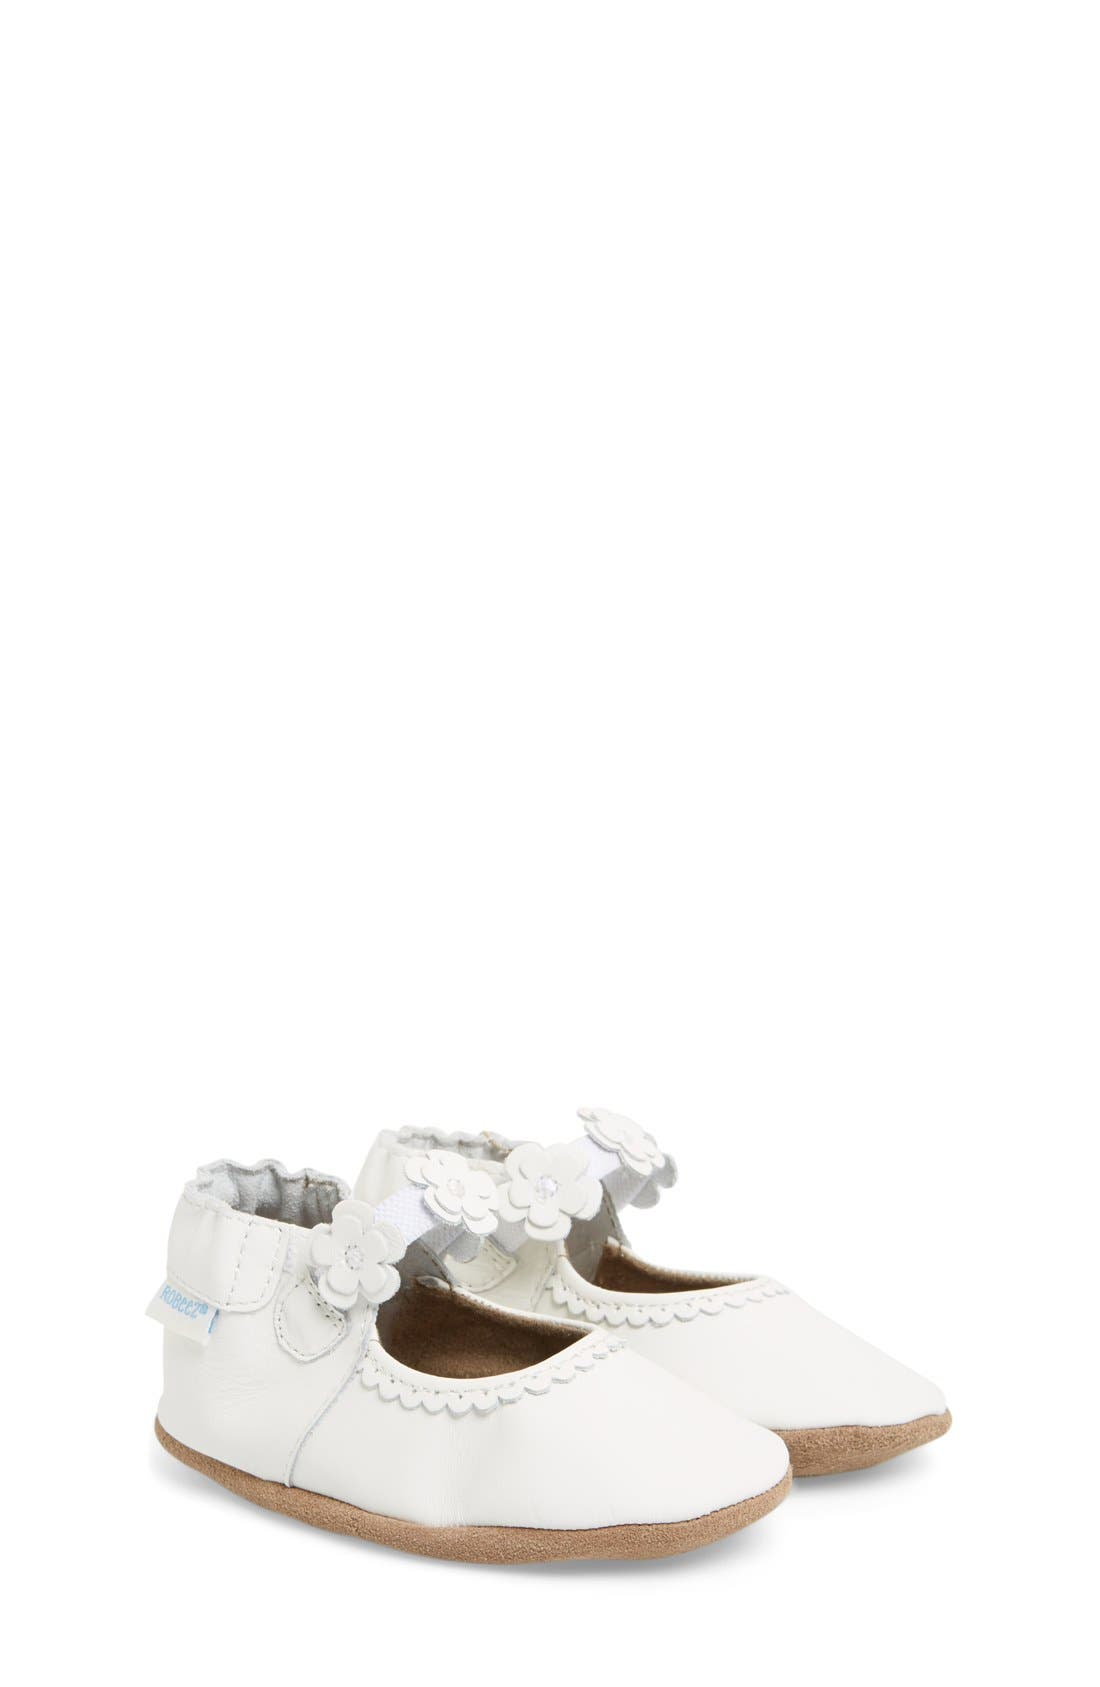 Main Image - Robeez® 'Claire' Mary Jane Crib Shoe (Baby & Walker)